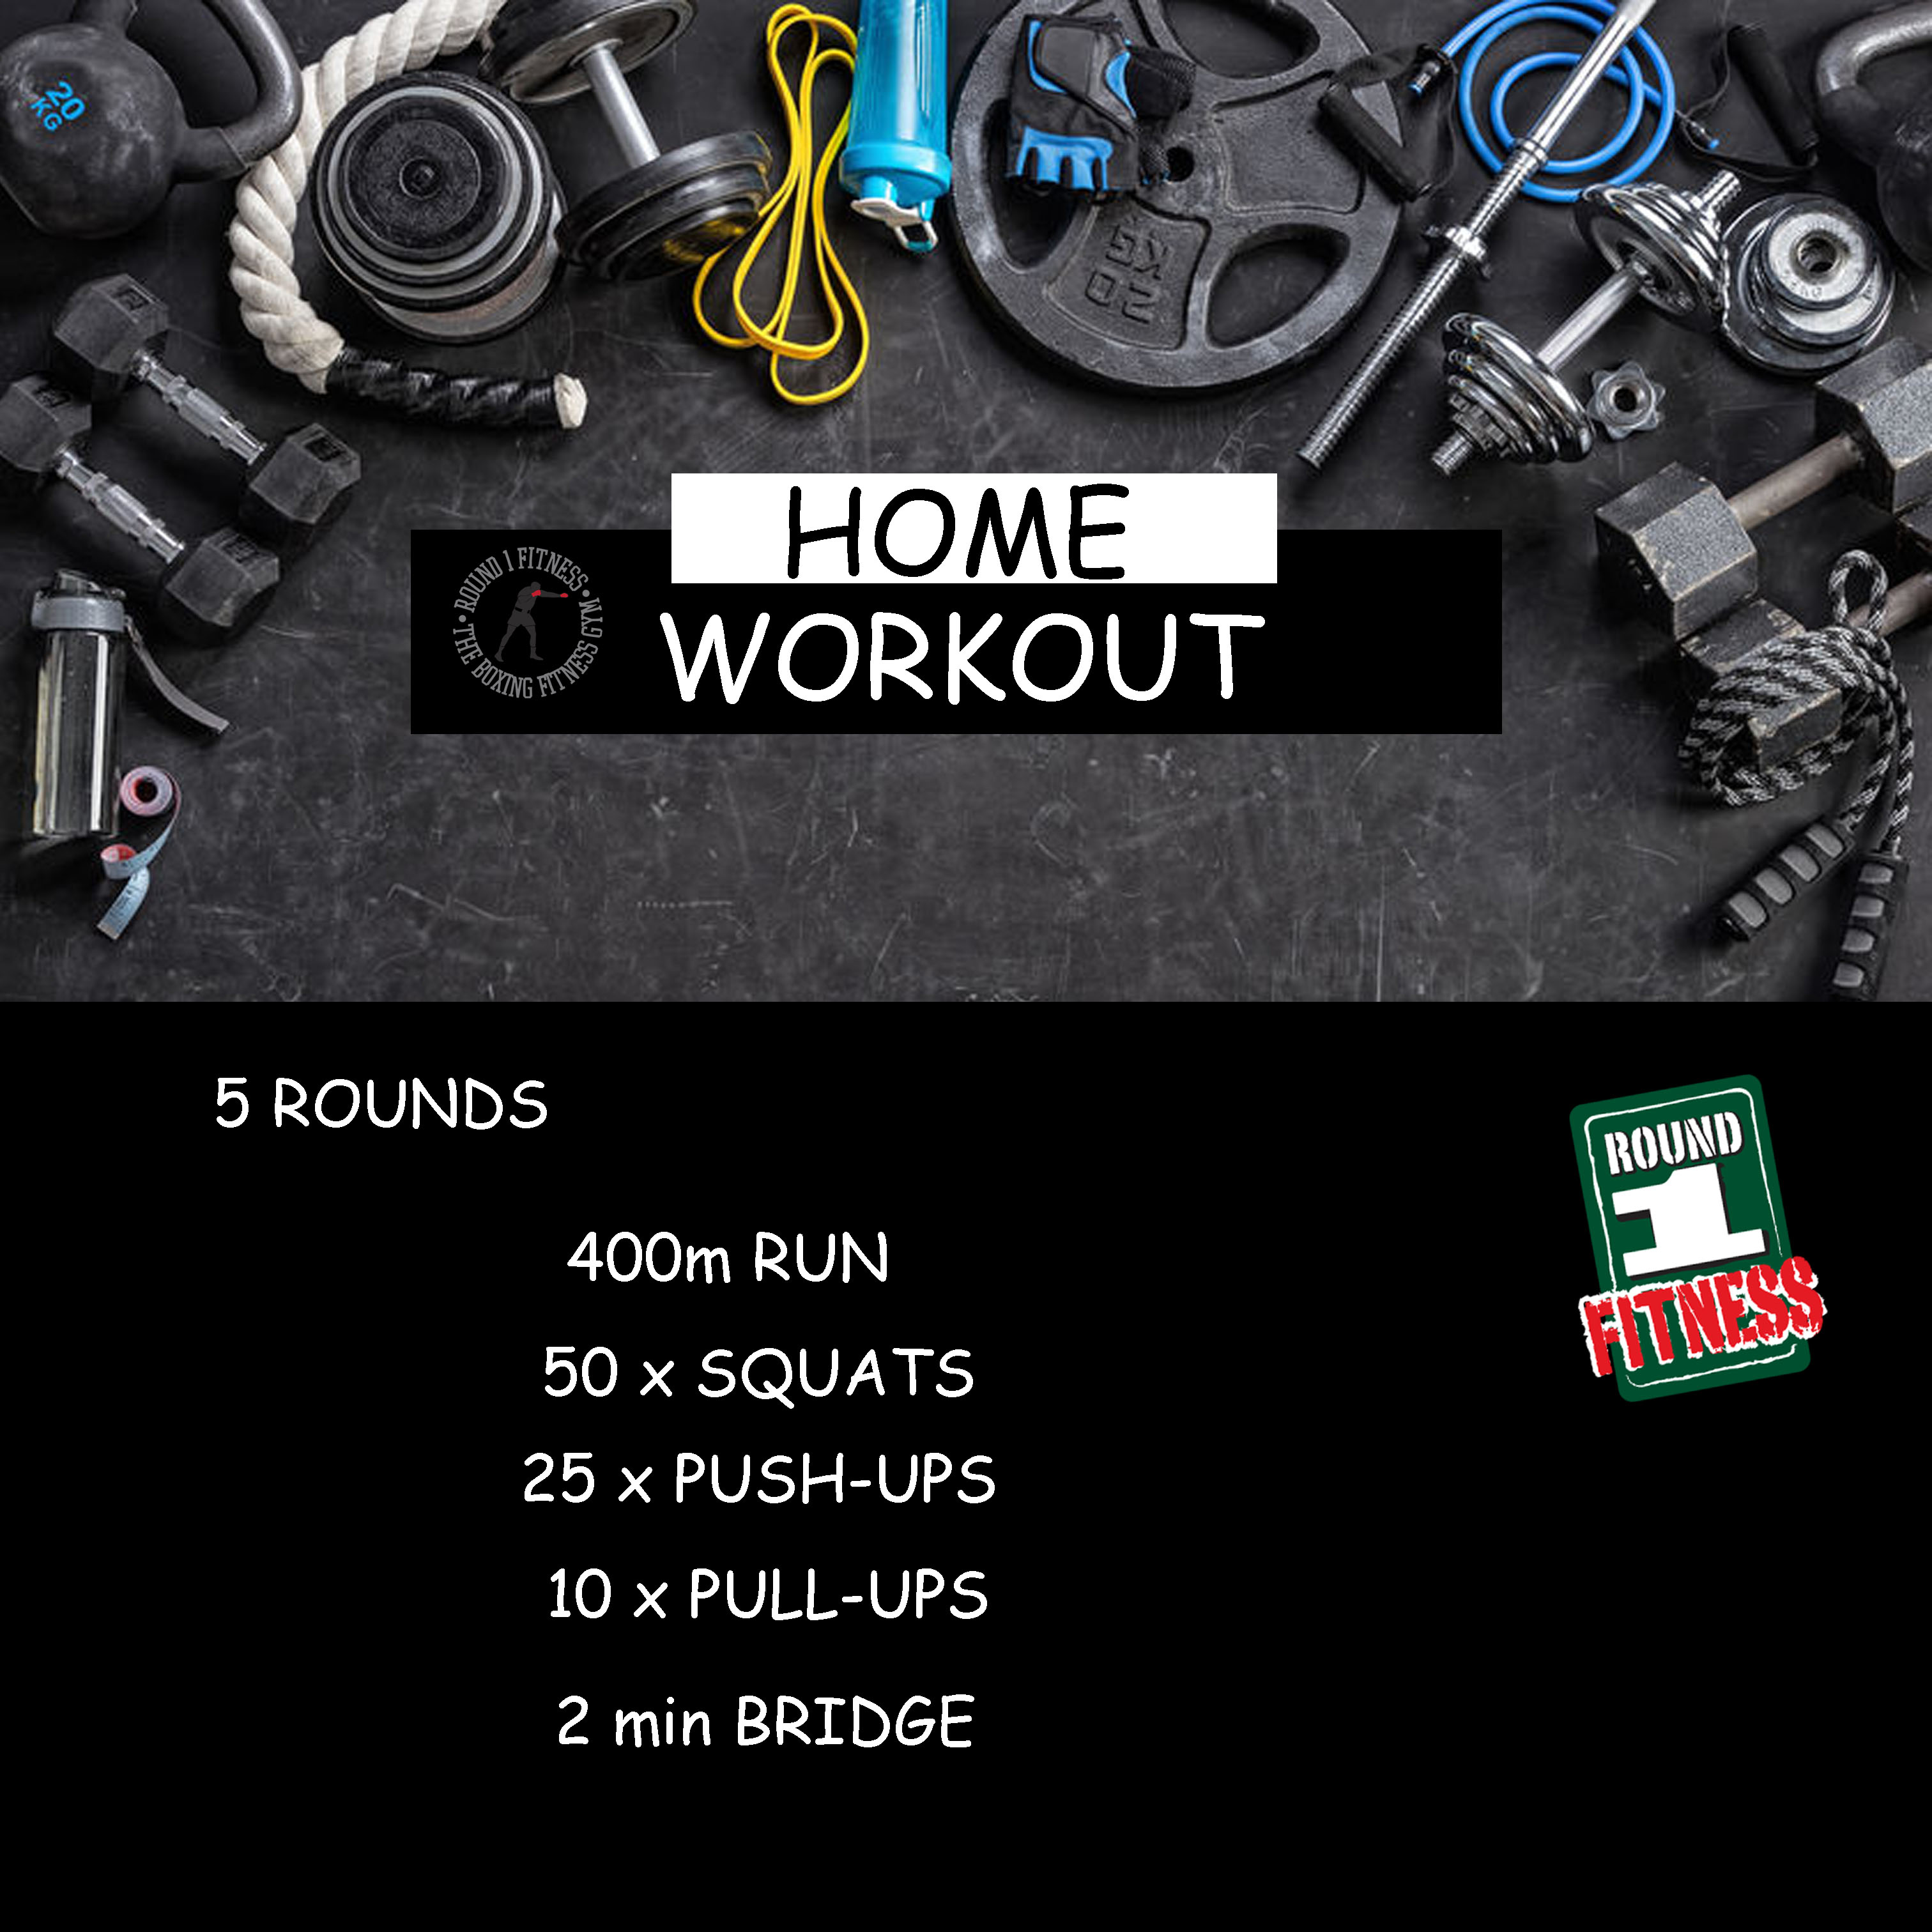 Home Workout:  Saturday, May 2nd